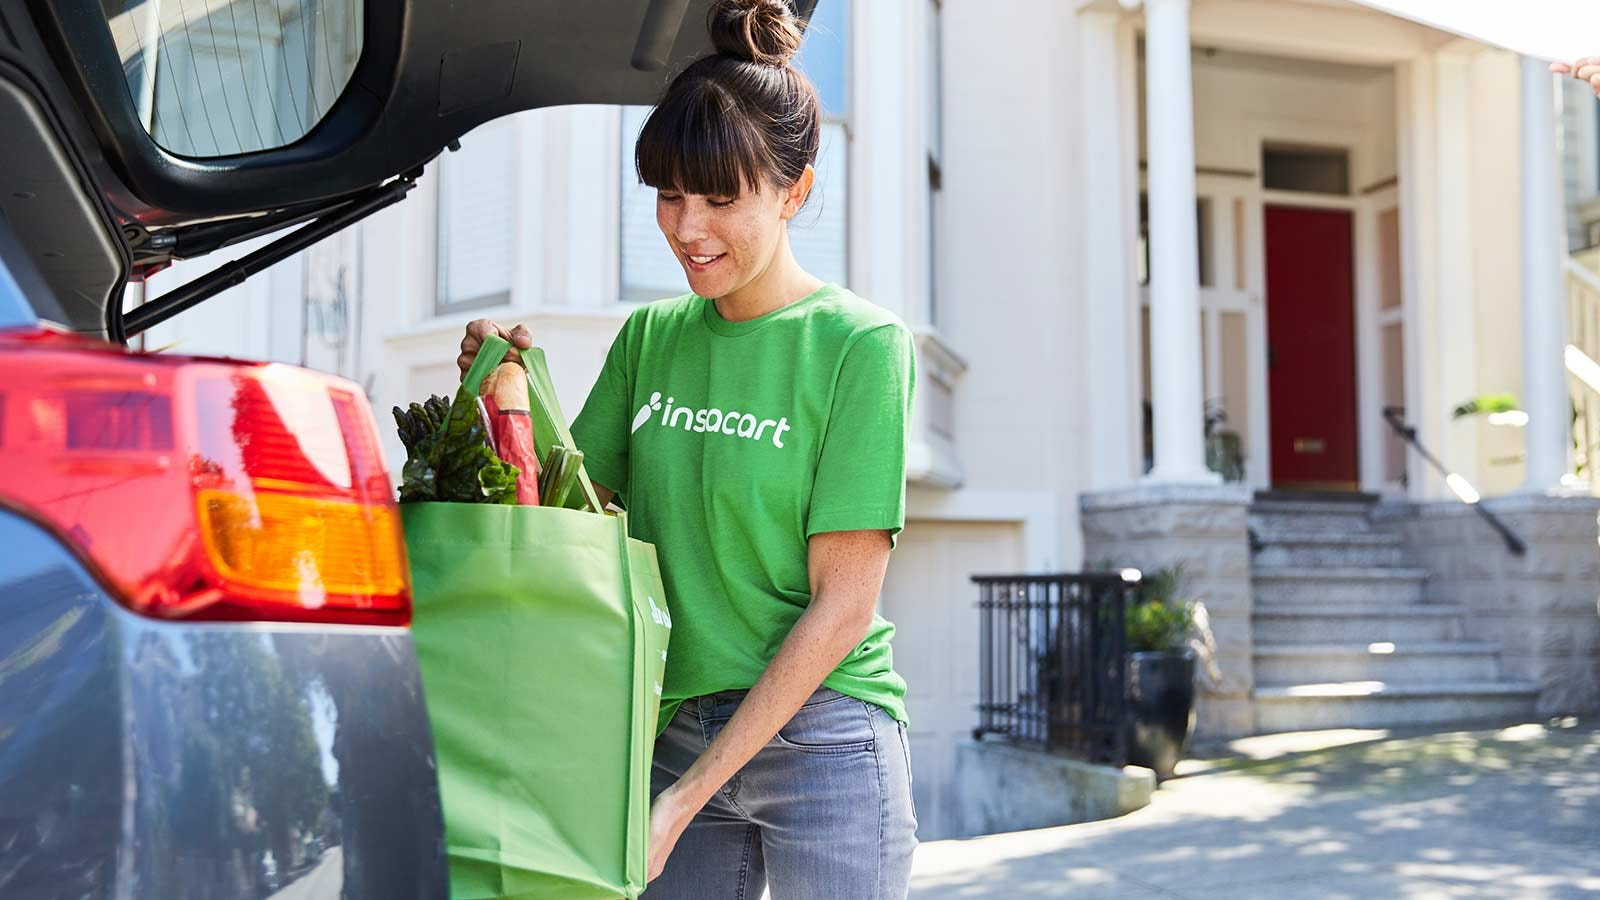 Woman unloading an Instacart delivery.